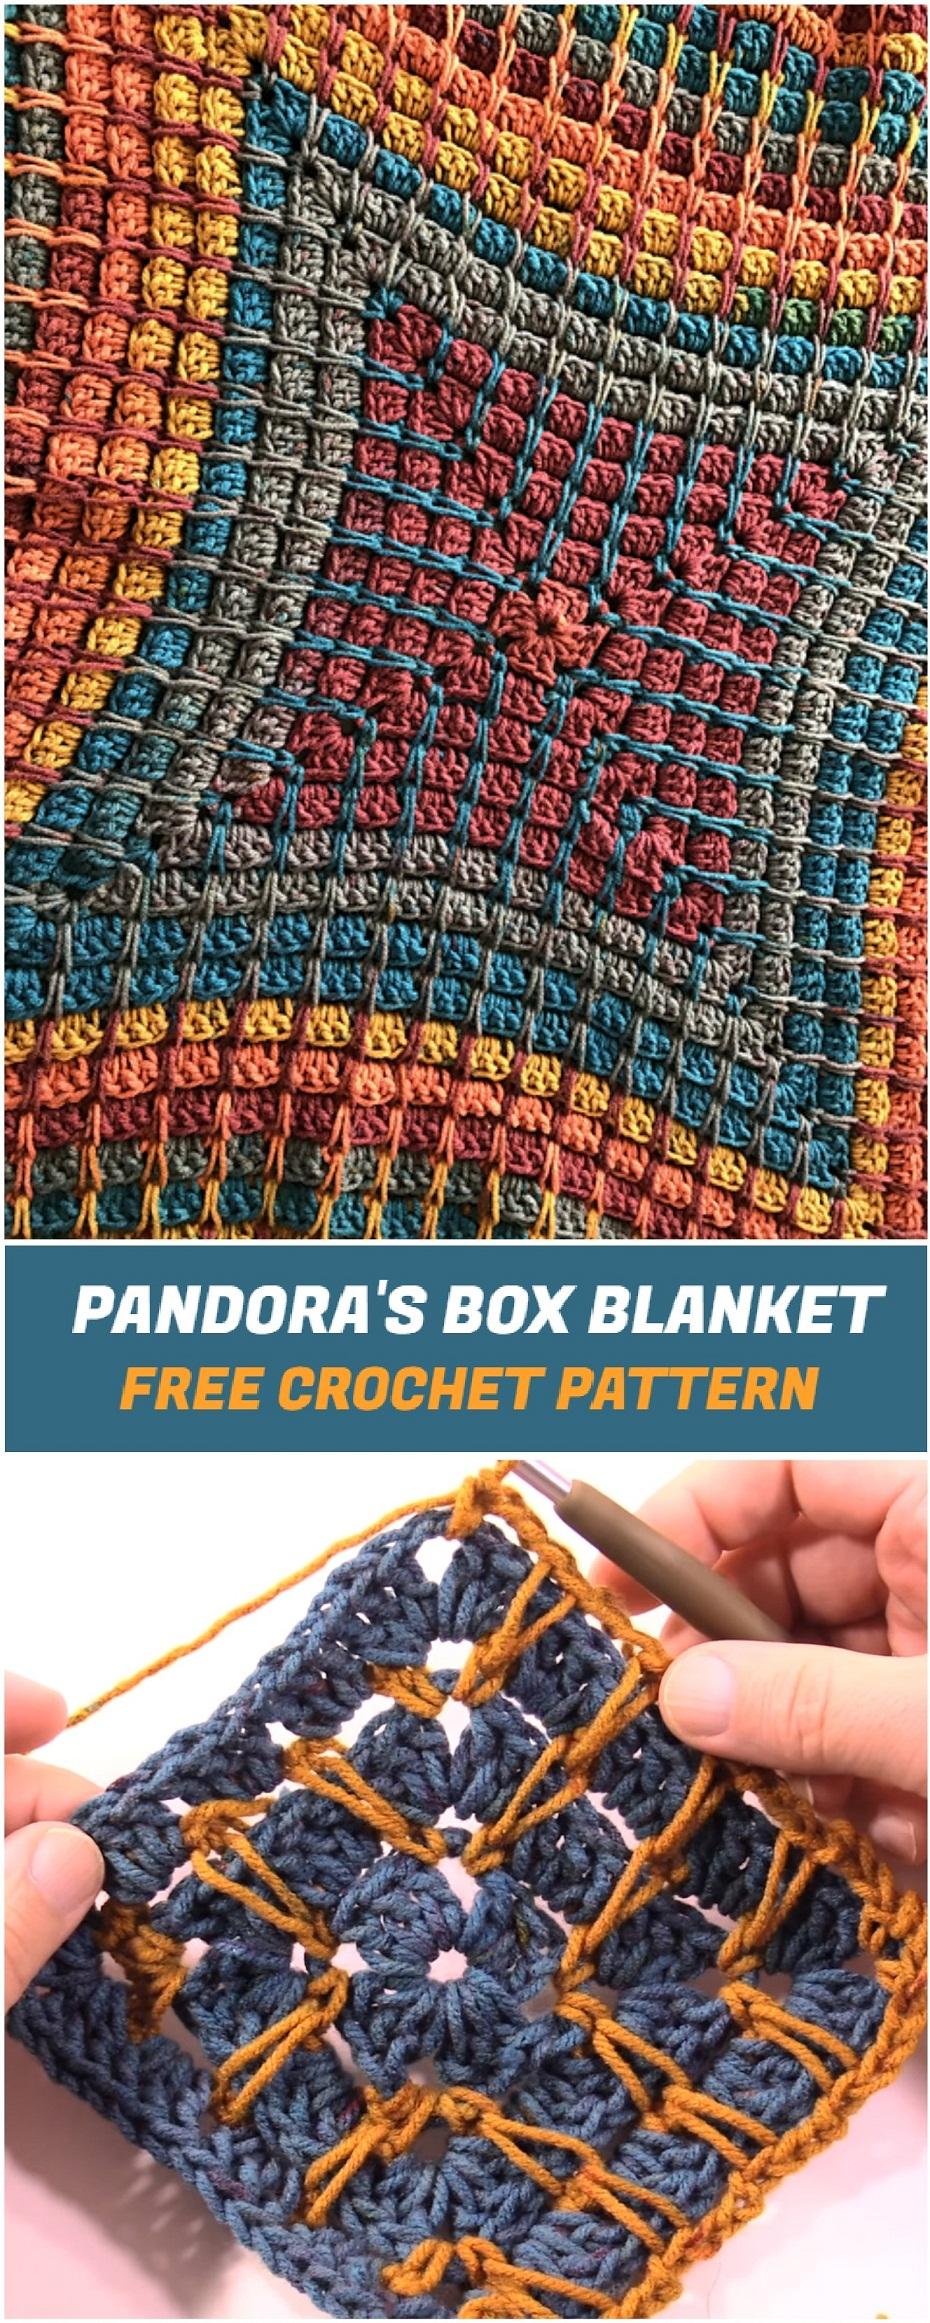 Pandoras box blanket free crochet pattern yarnandhooks pandoras box blanket link to the free pdf pattern is here dt1010fo